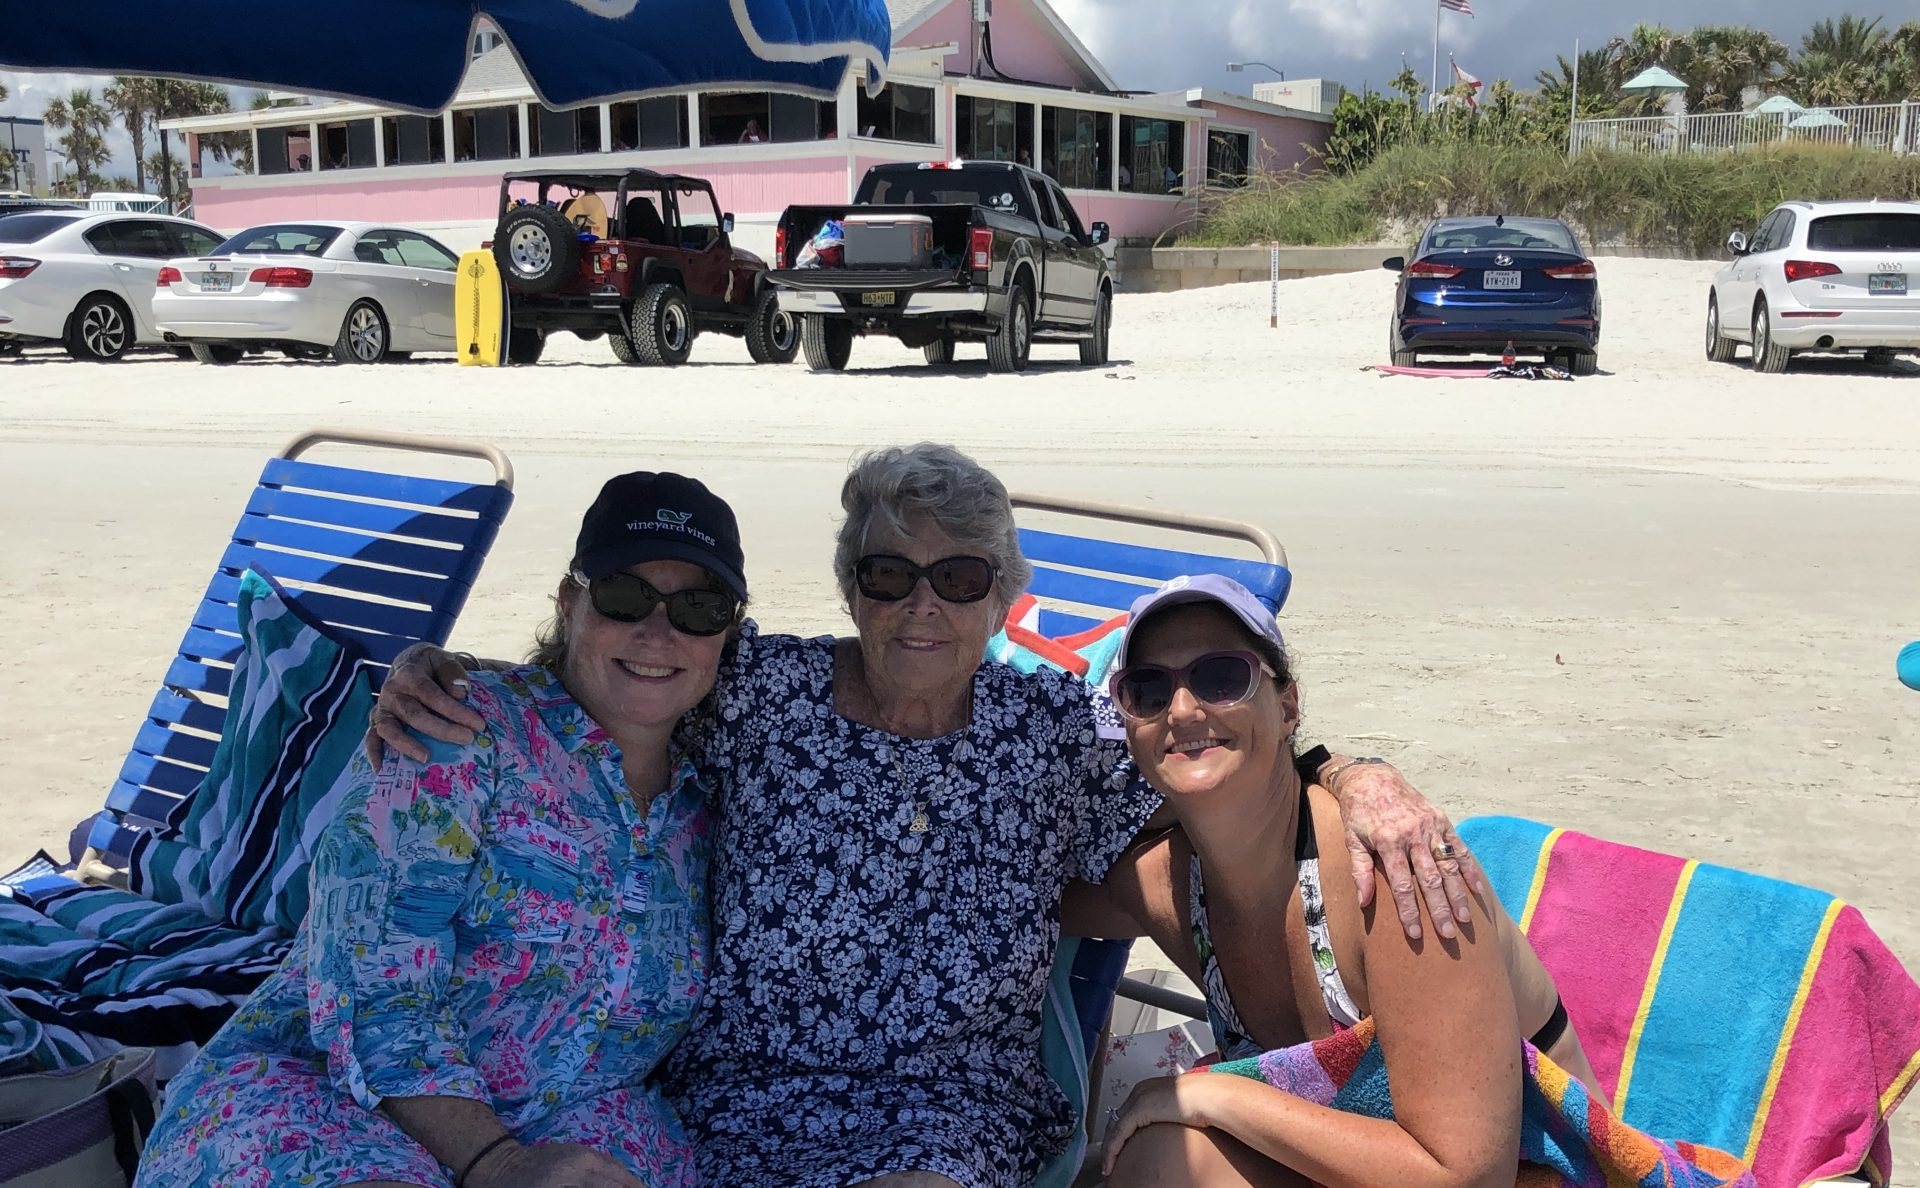 Mom was thrilled to be at the ocean - New Smyrna Beach July 2019